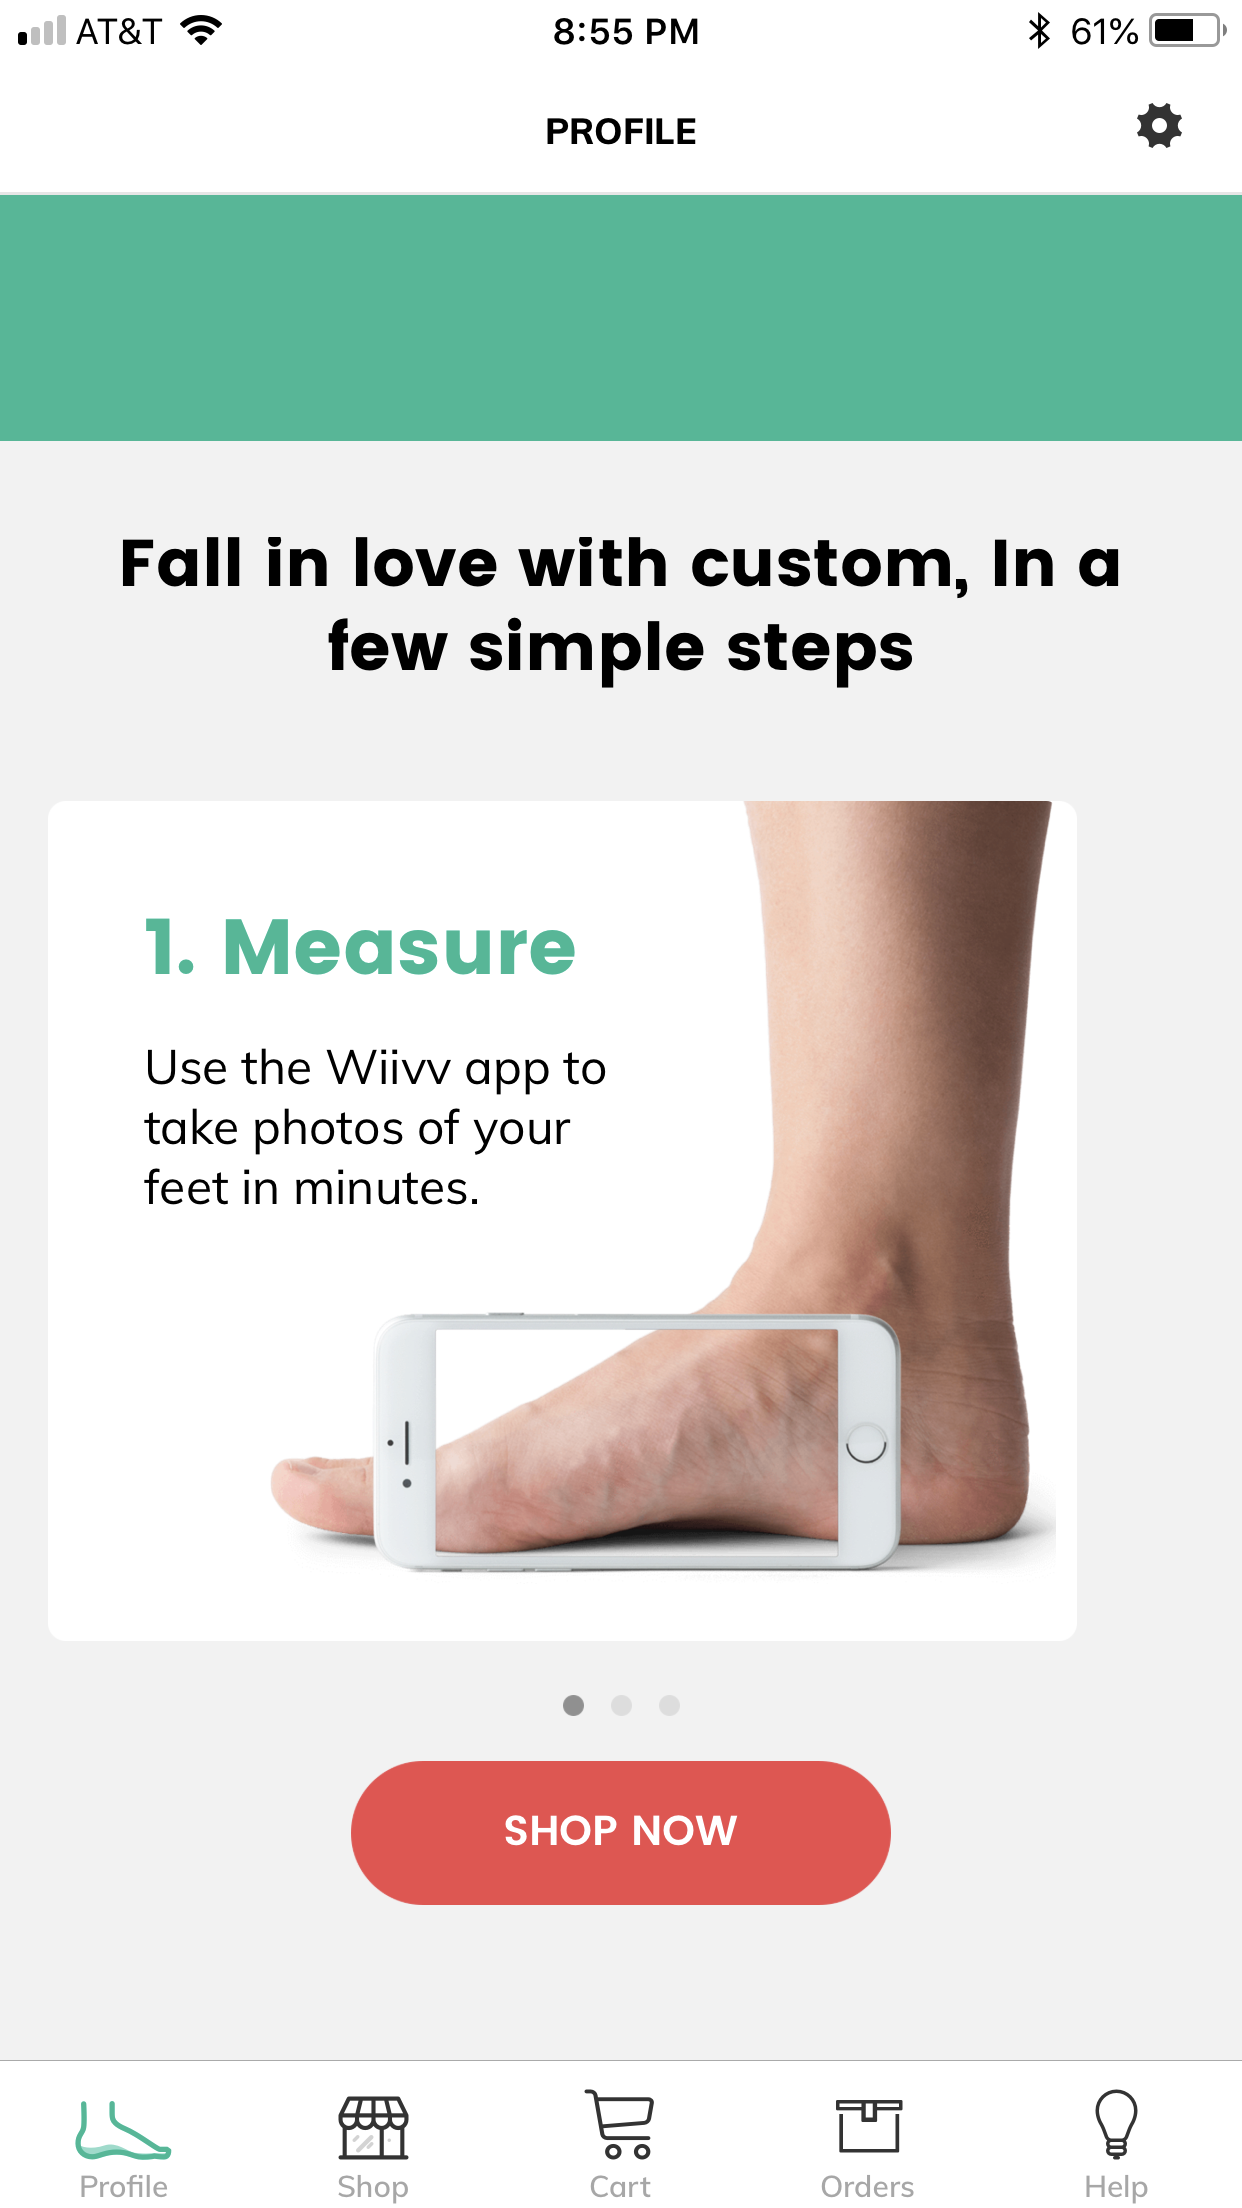 Looking to make your shoes more comfortable? Wanting to go that extra mile on your runs? Check out my full review of Wiivv custom insoles that are made to fit your feet perfectly. | Running | Shoes | Insoles | Comfort |